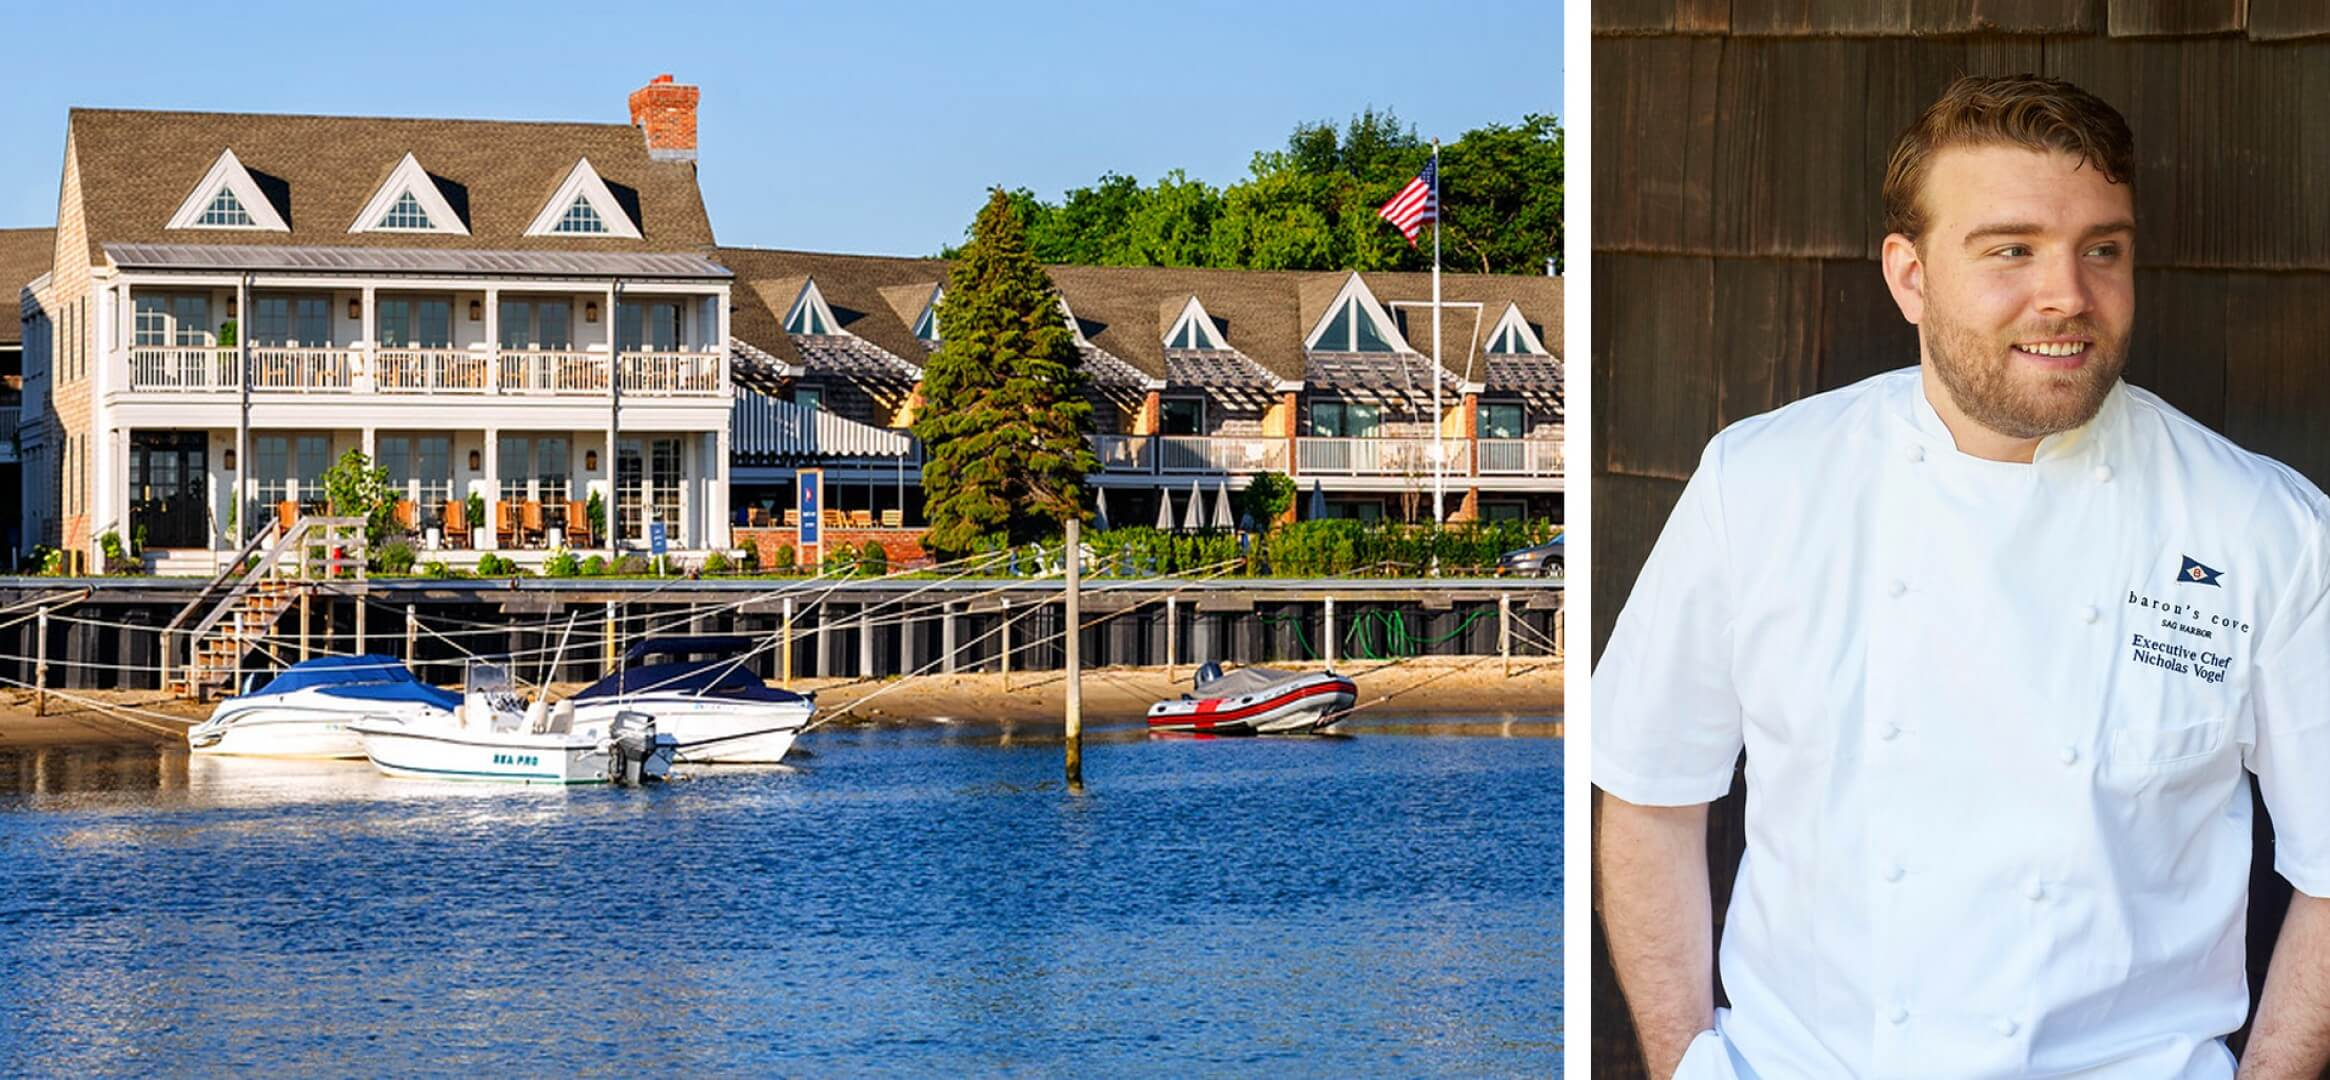 collage of baron's cove and picture of chef Nicholas